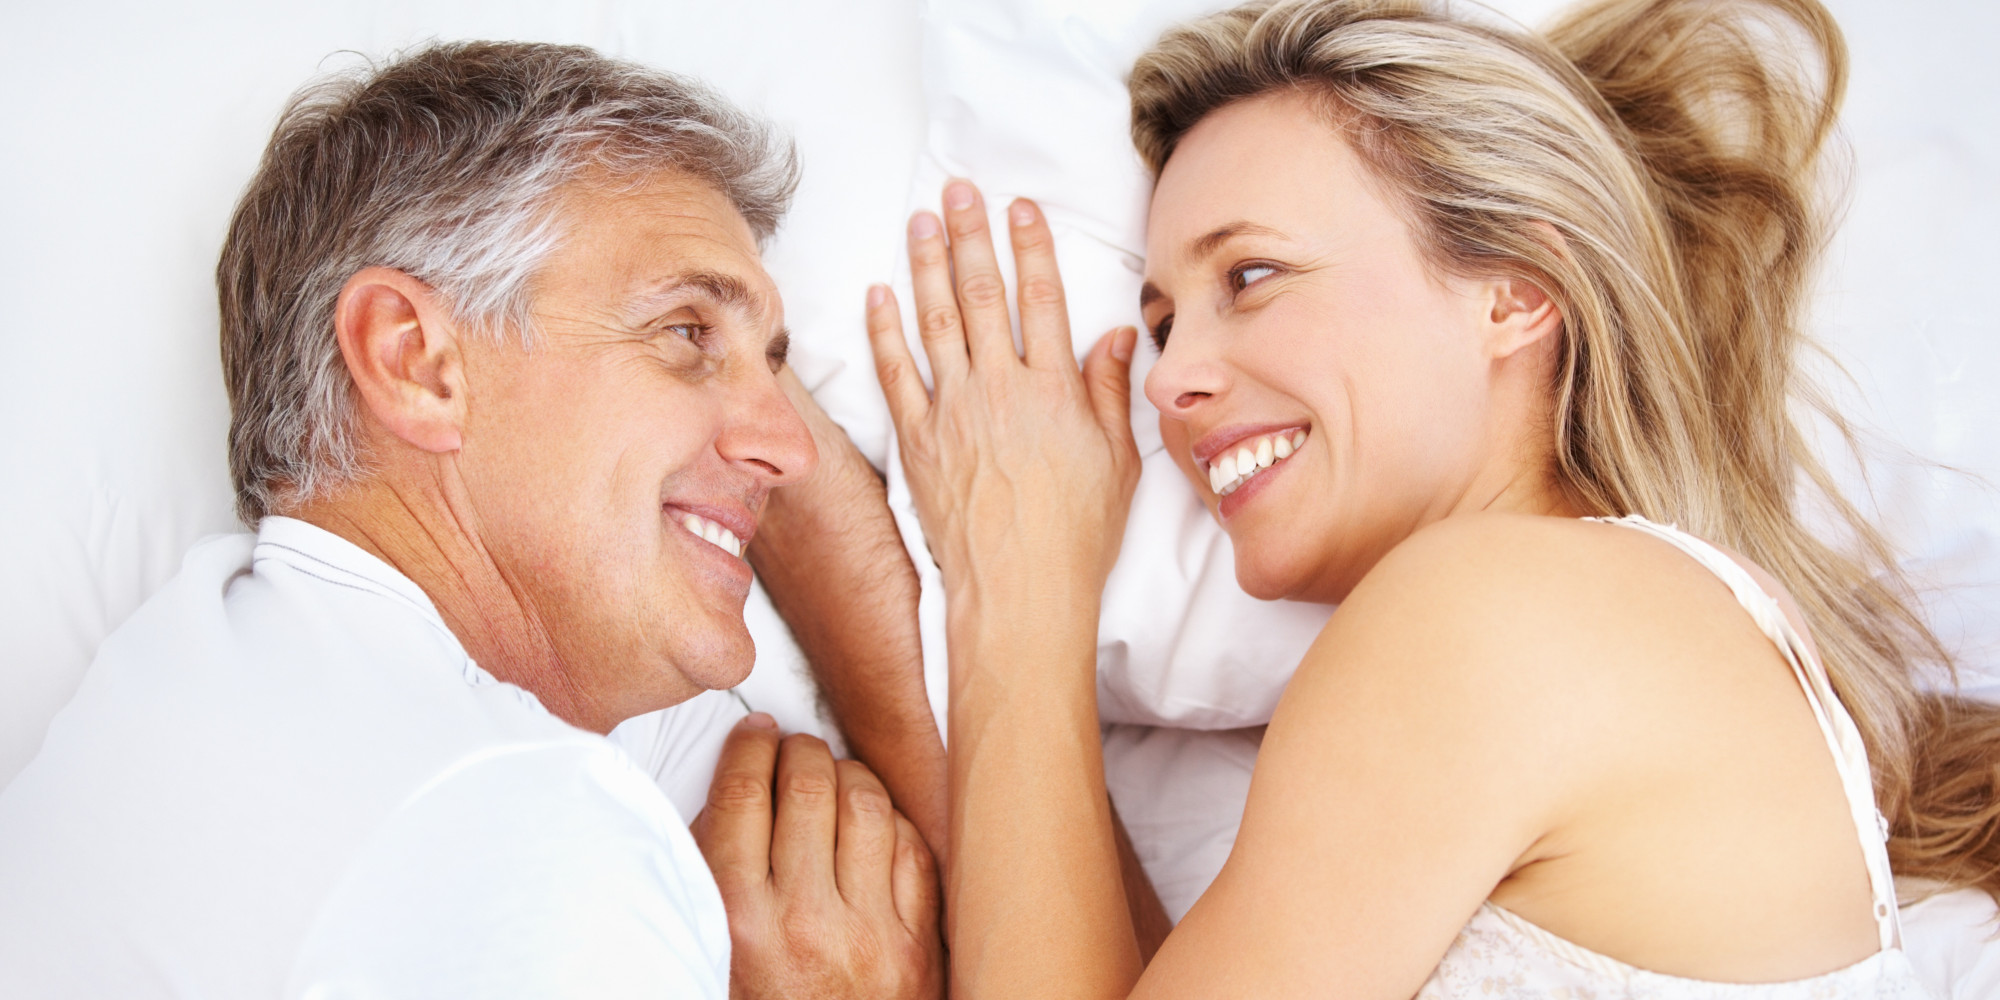 Thanks for mature couple sex bed something is